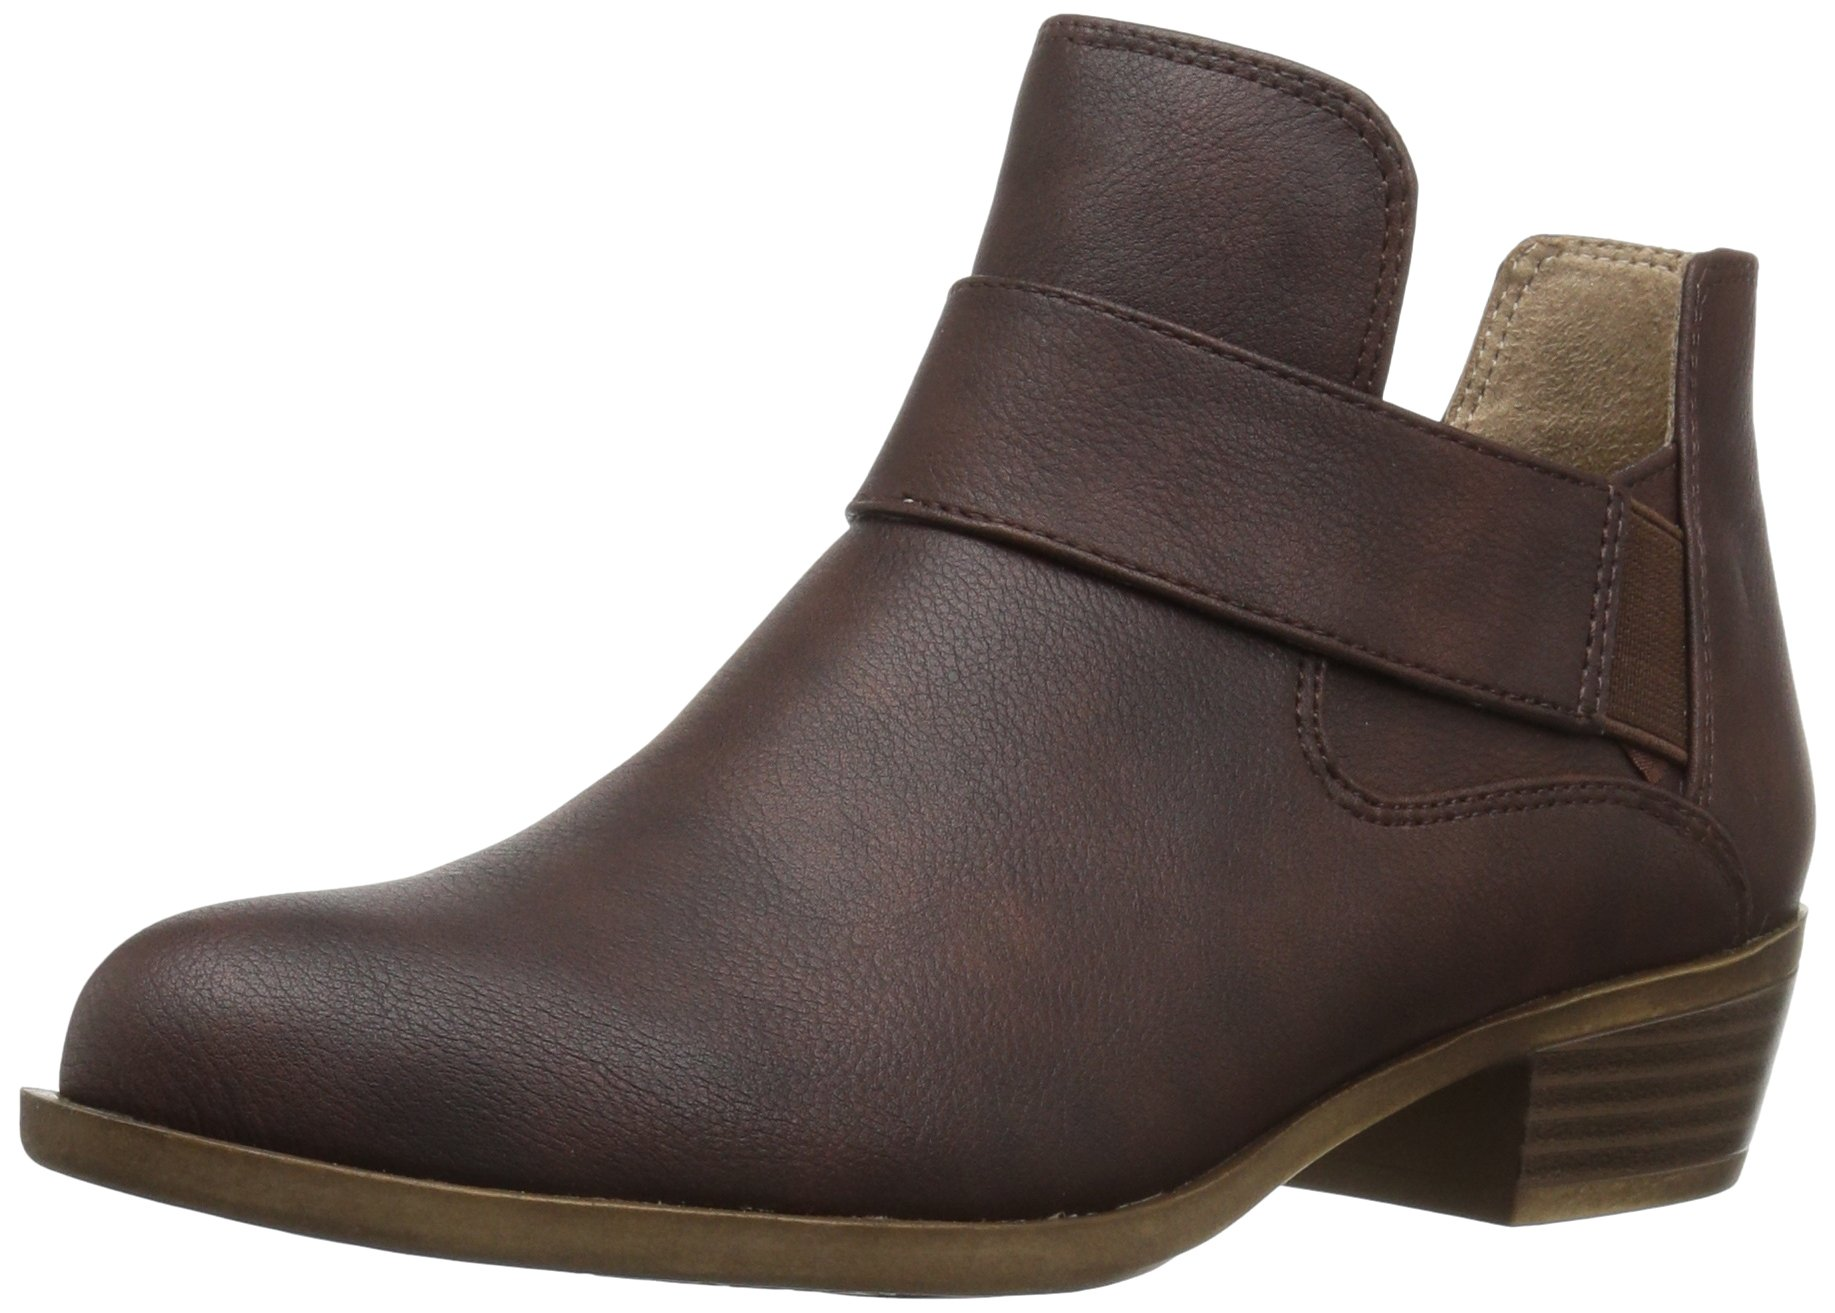 LifeStride Women's Able Ankle Bootie, Brown, 6.5 W US